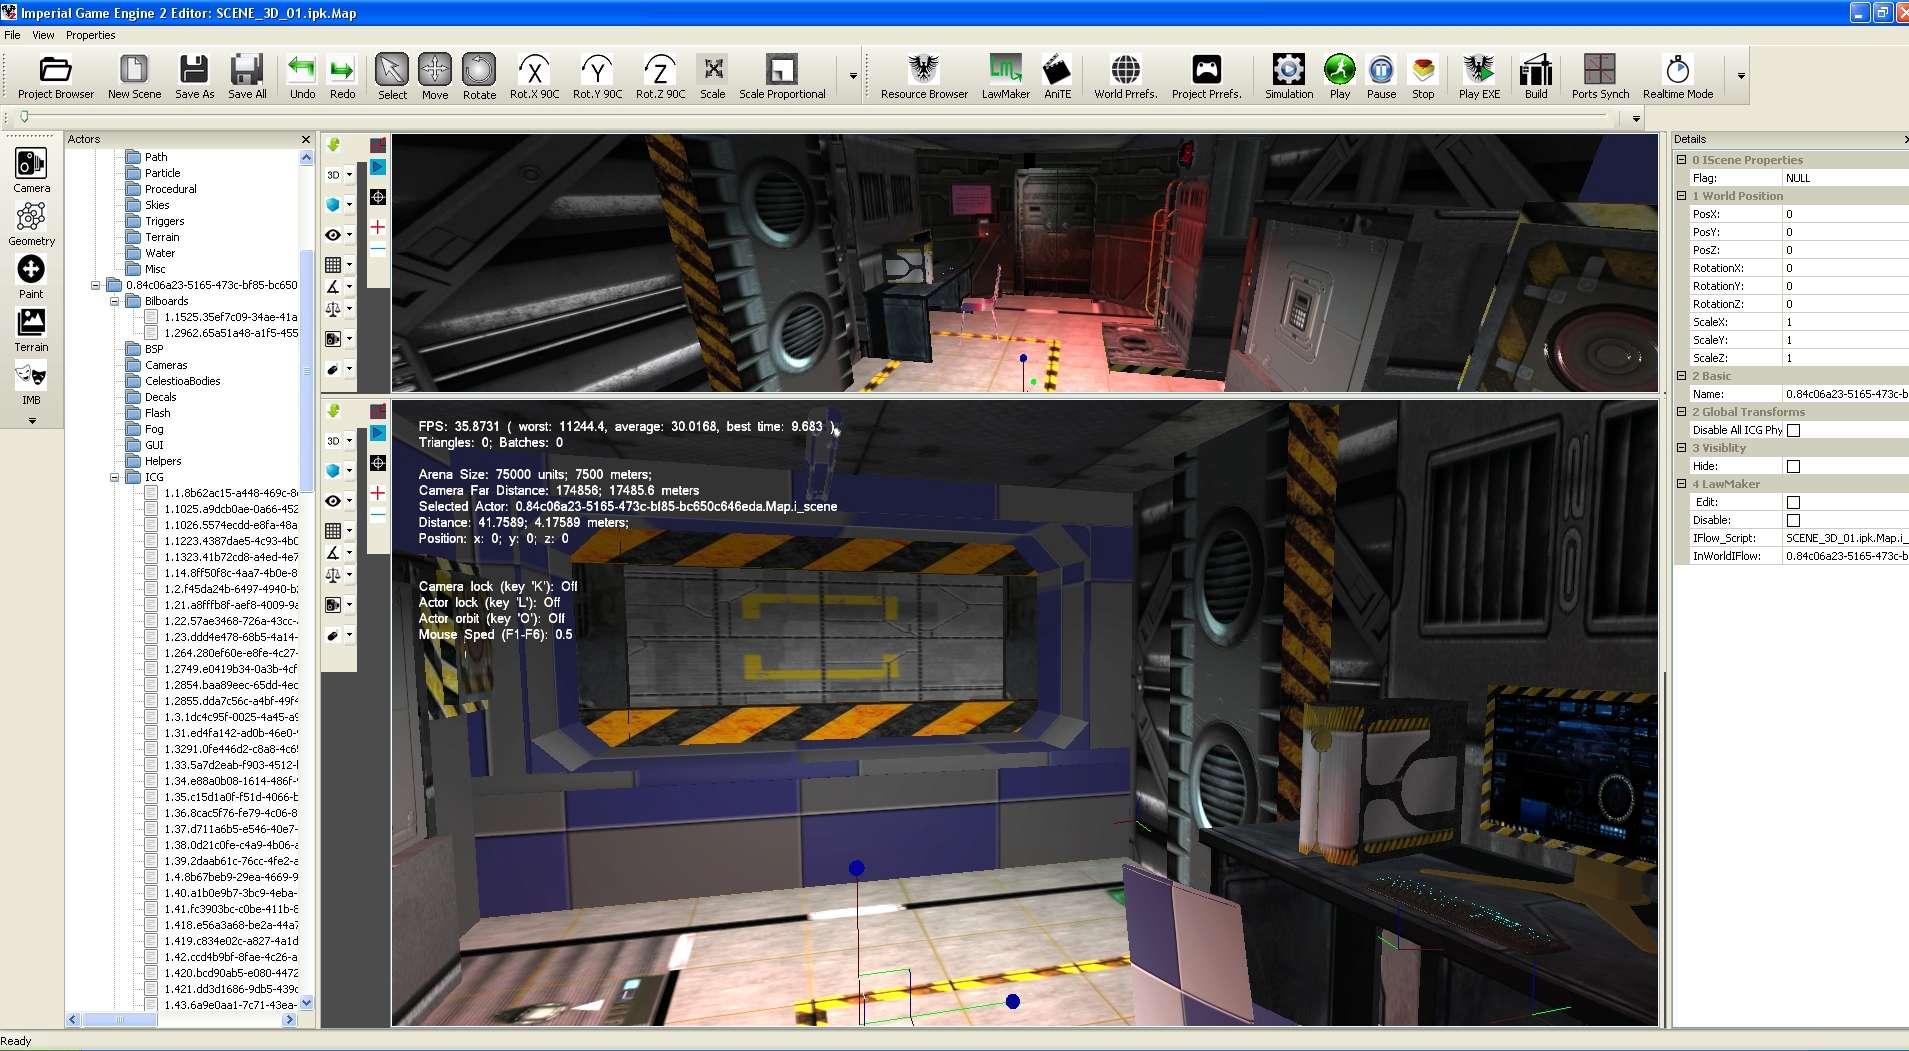 Imperial Game Engine SDK 2 7 7 released - Page 5 - Ogre Forums